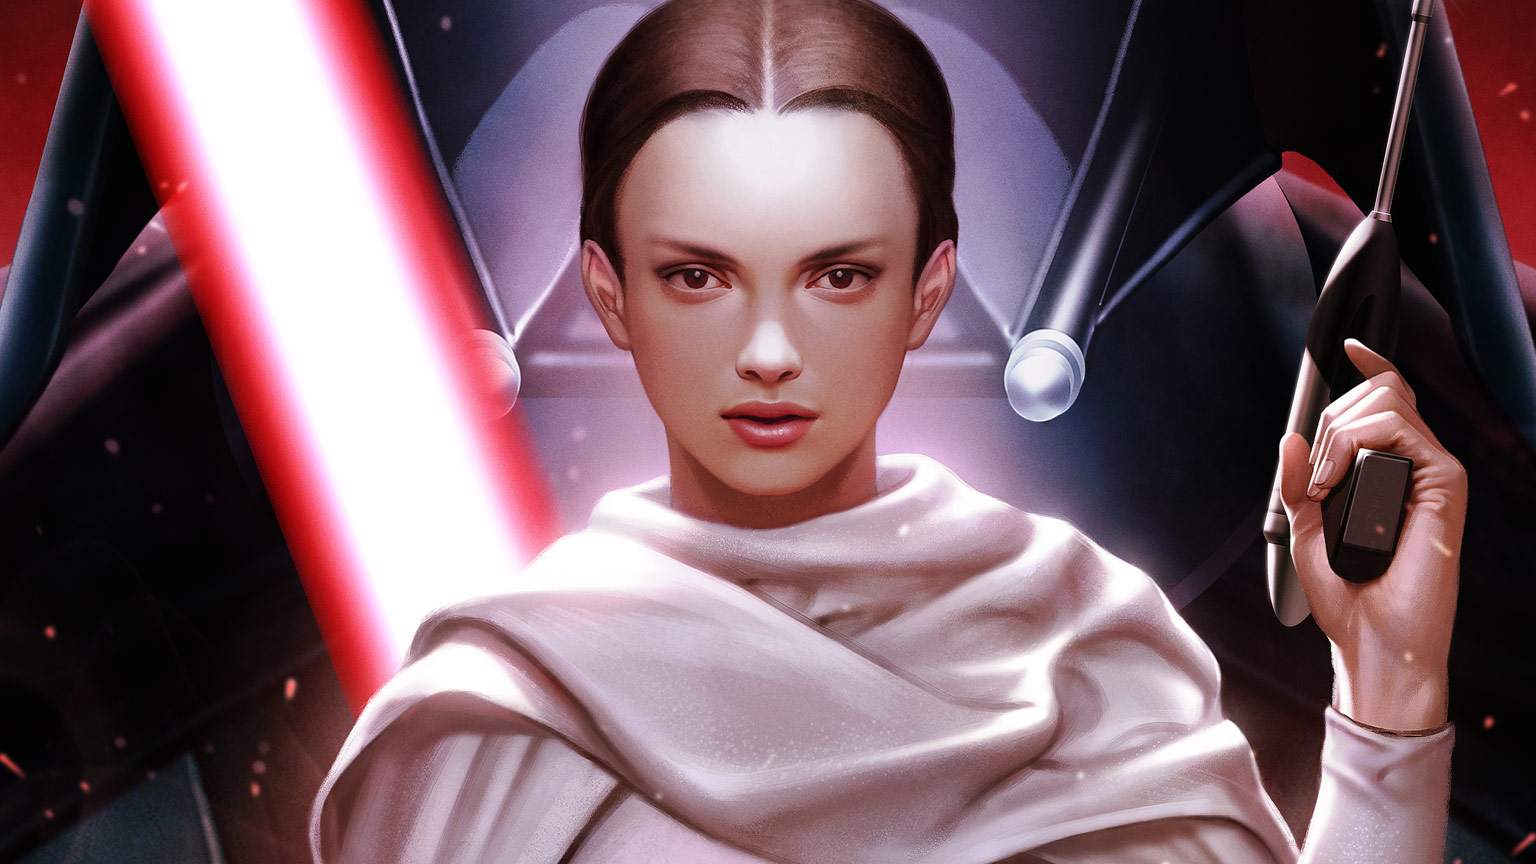 Padmé Amidala on the cover of Marvel's Darth Vader #2